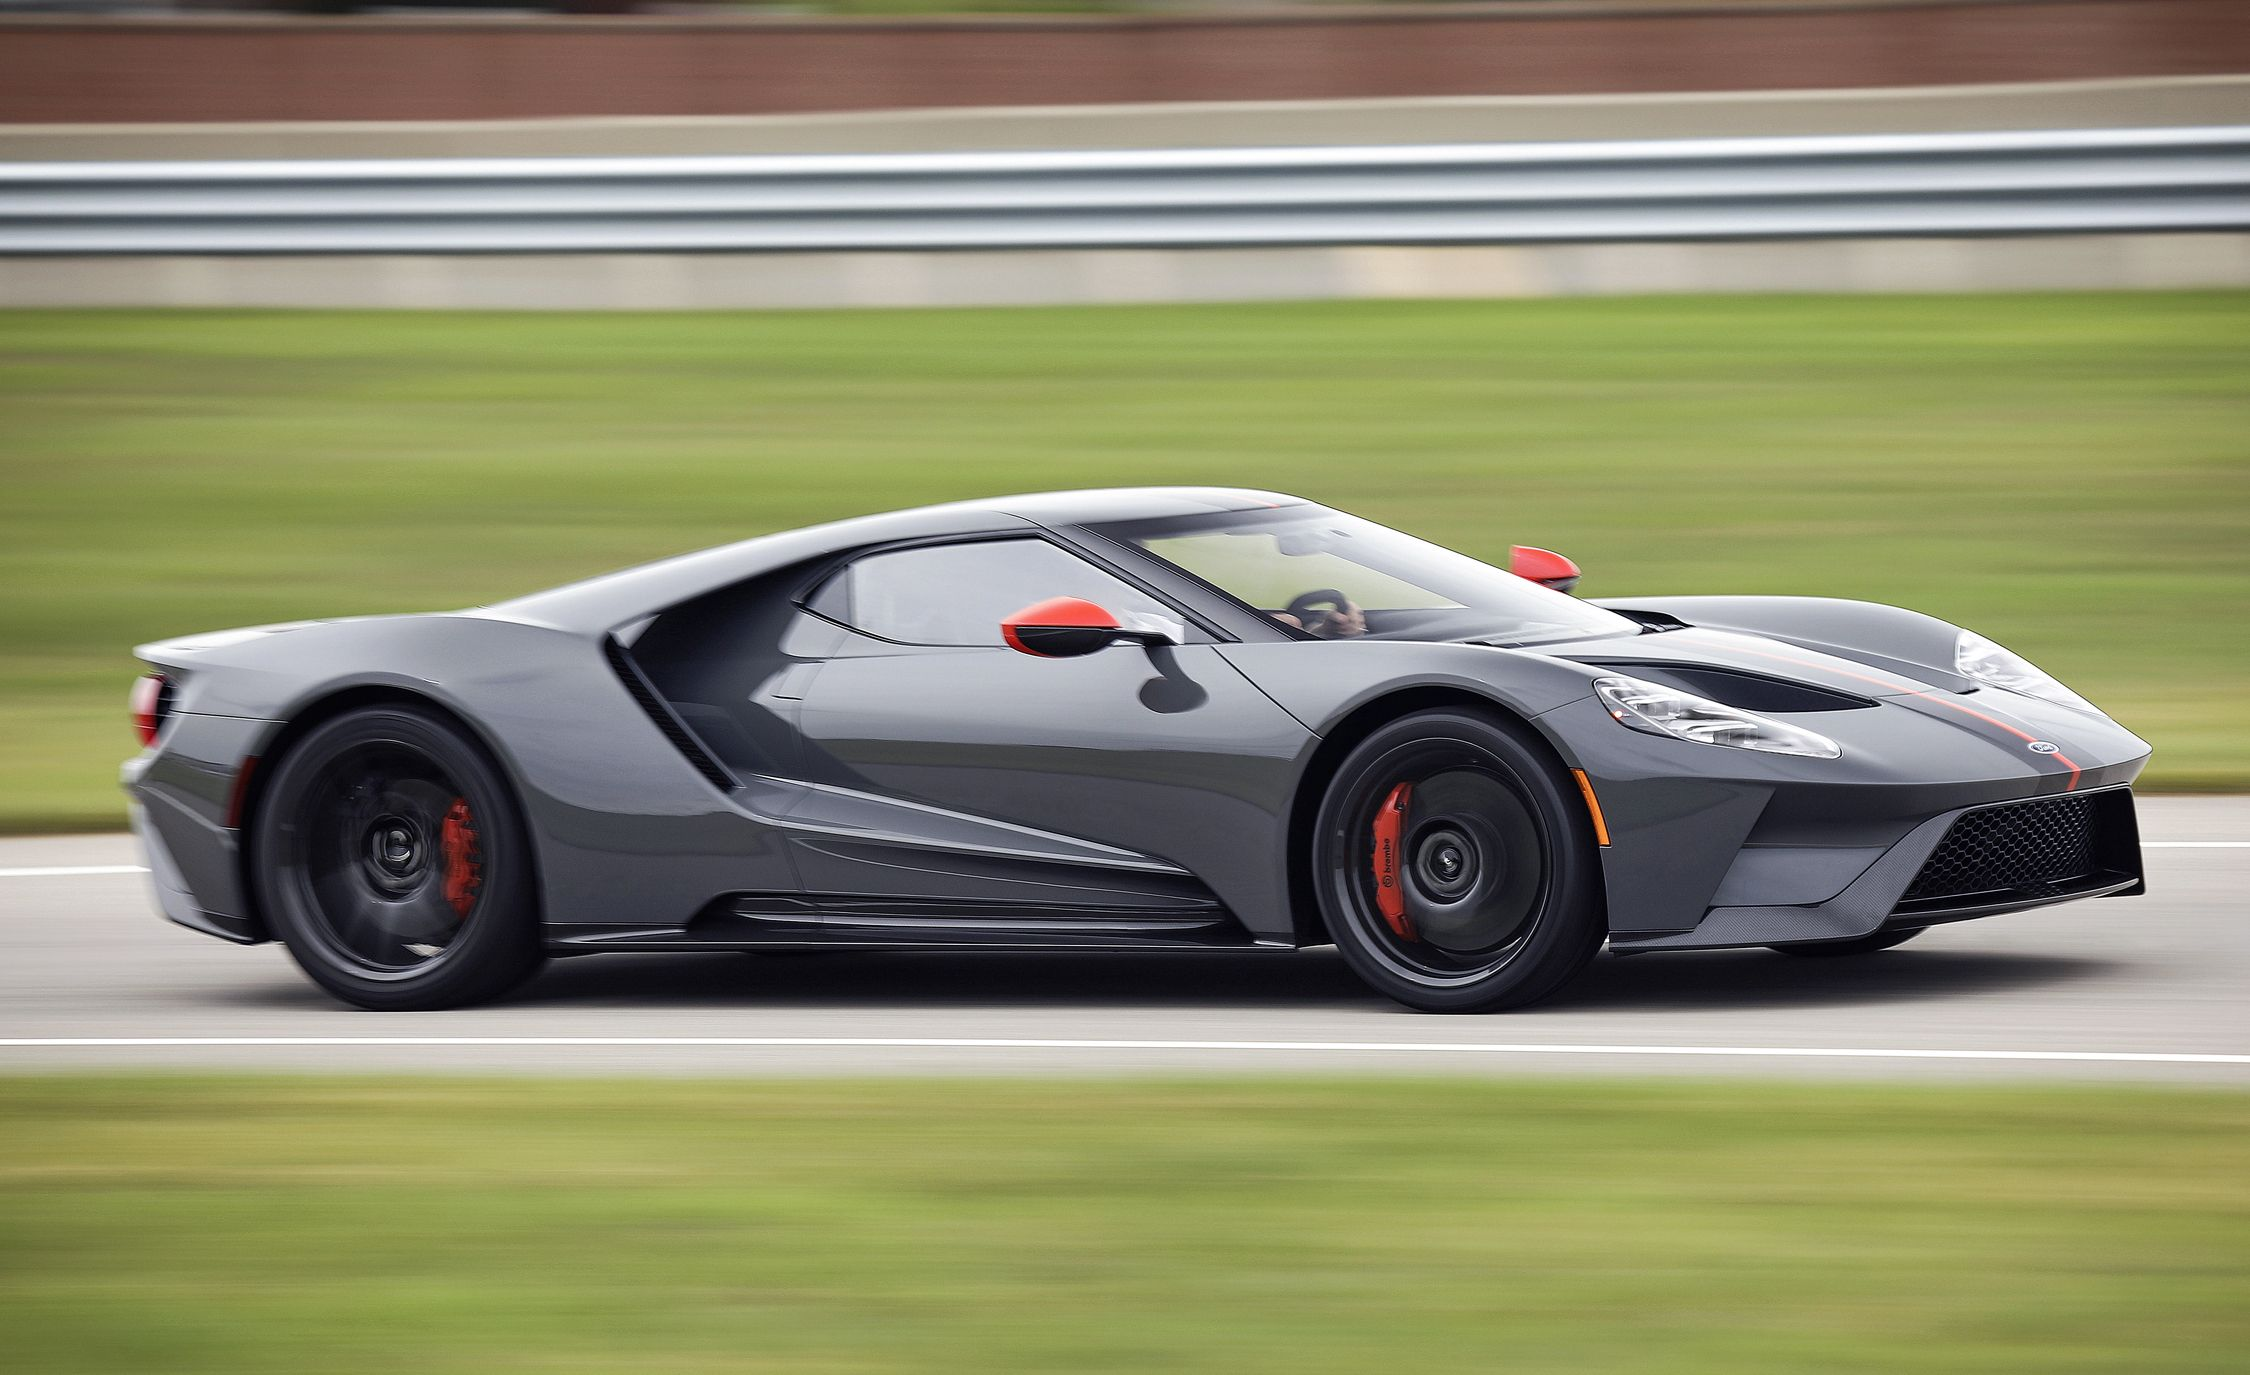 2019 Ford Gt Review Pricing And Specs